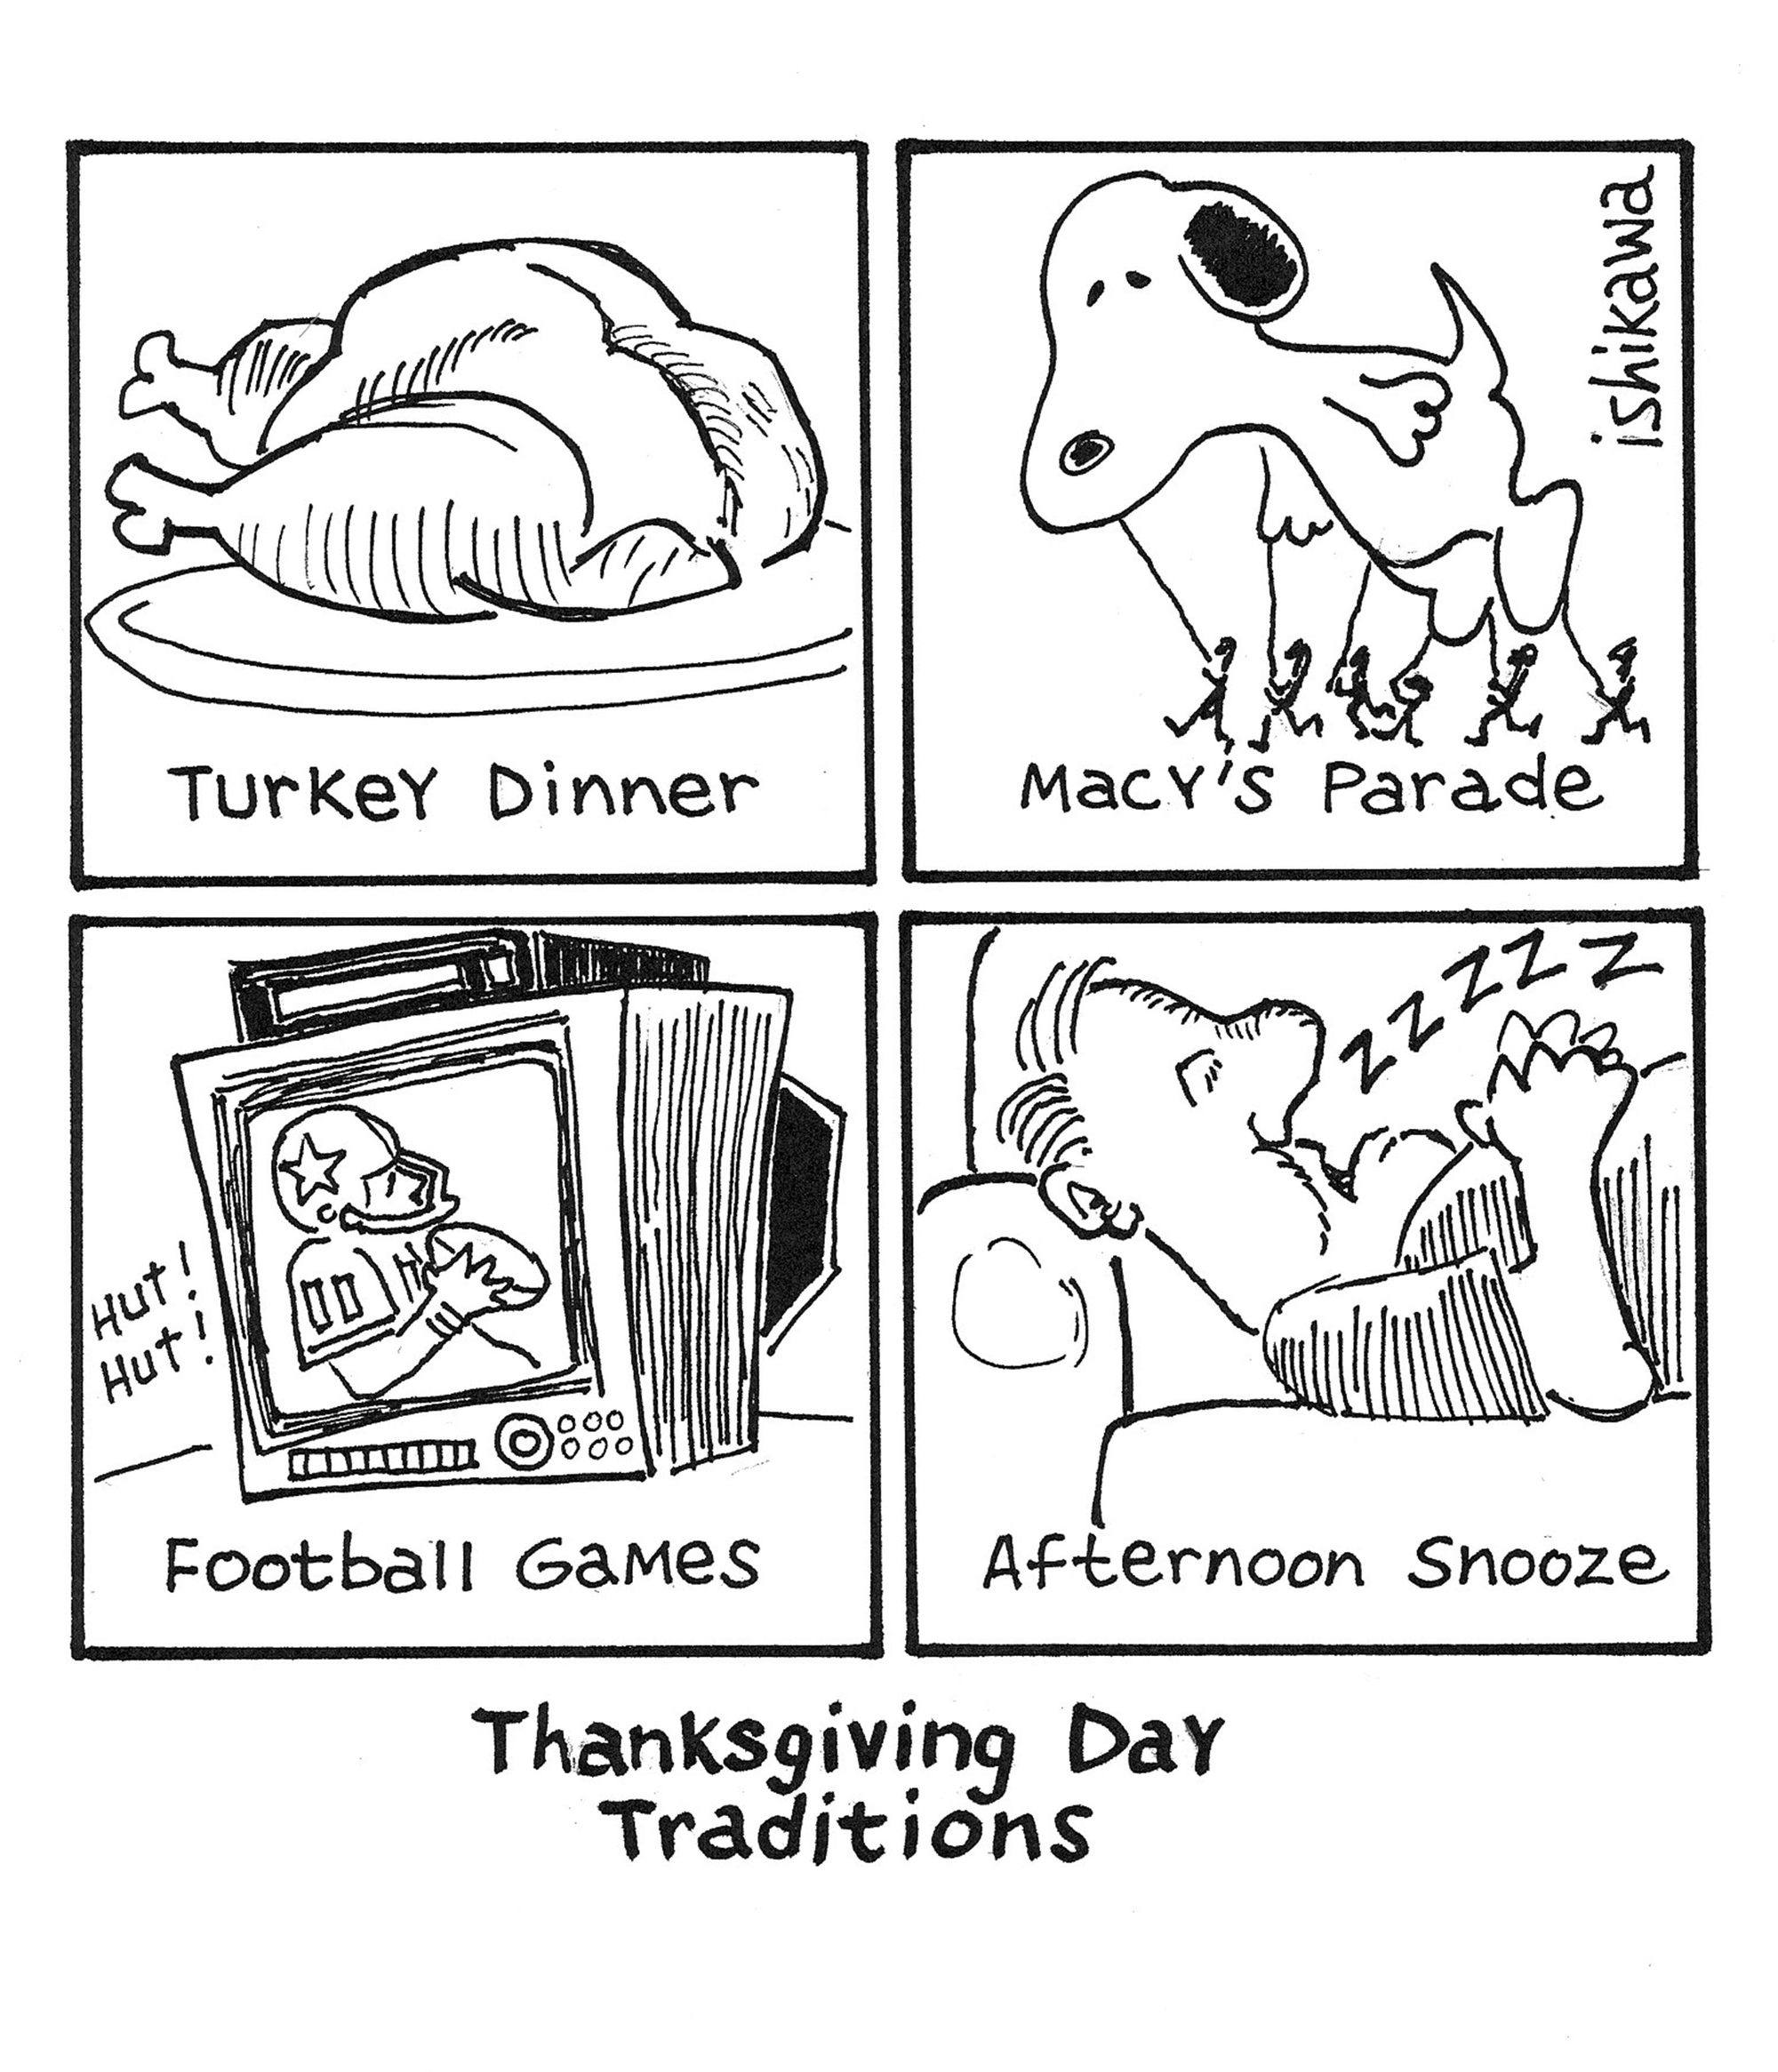 Thanksgiving Day Traditions